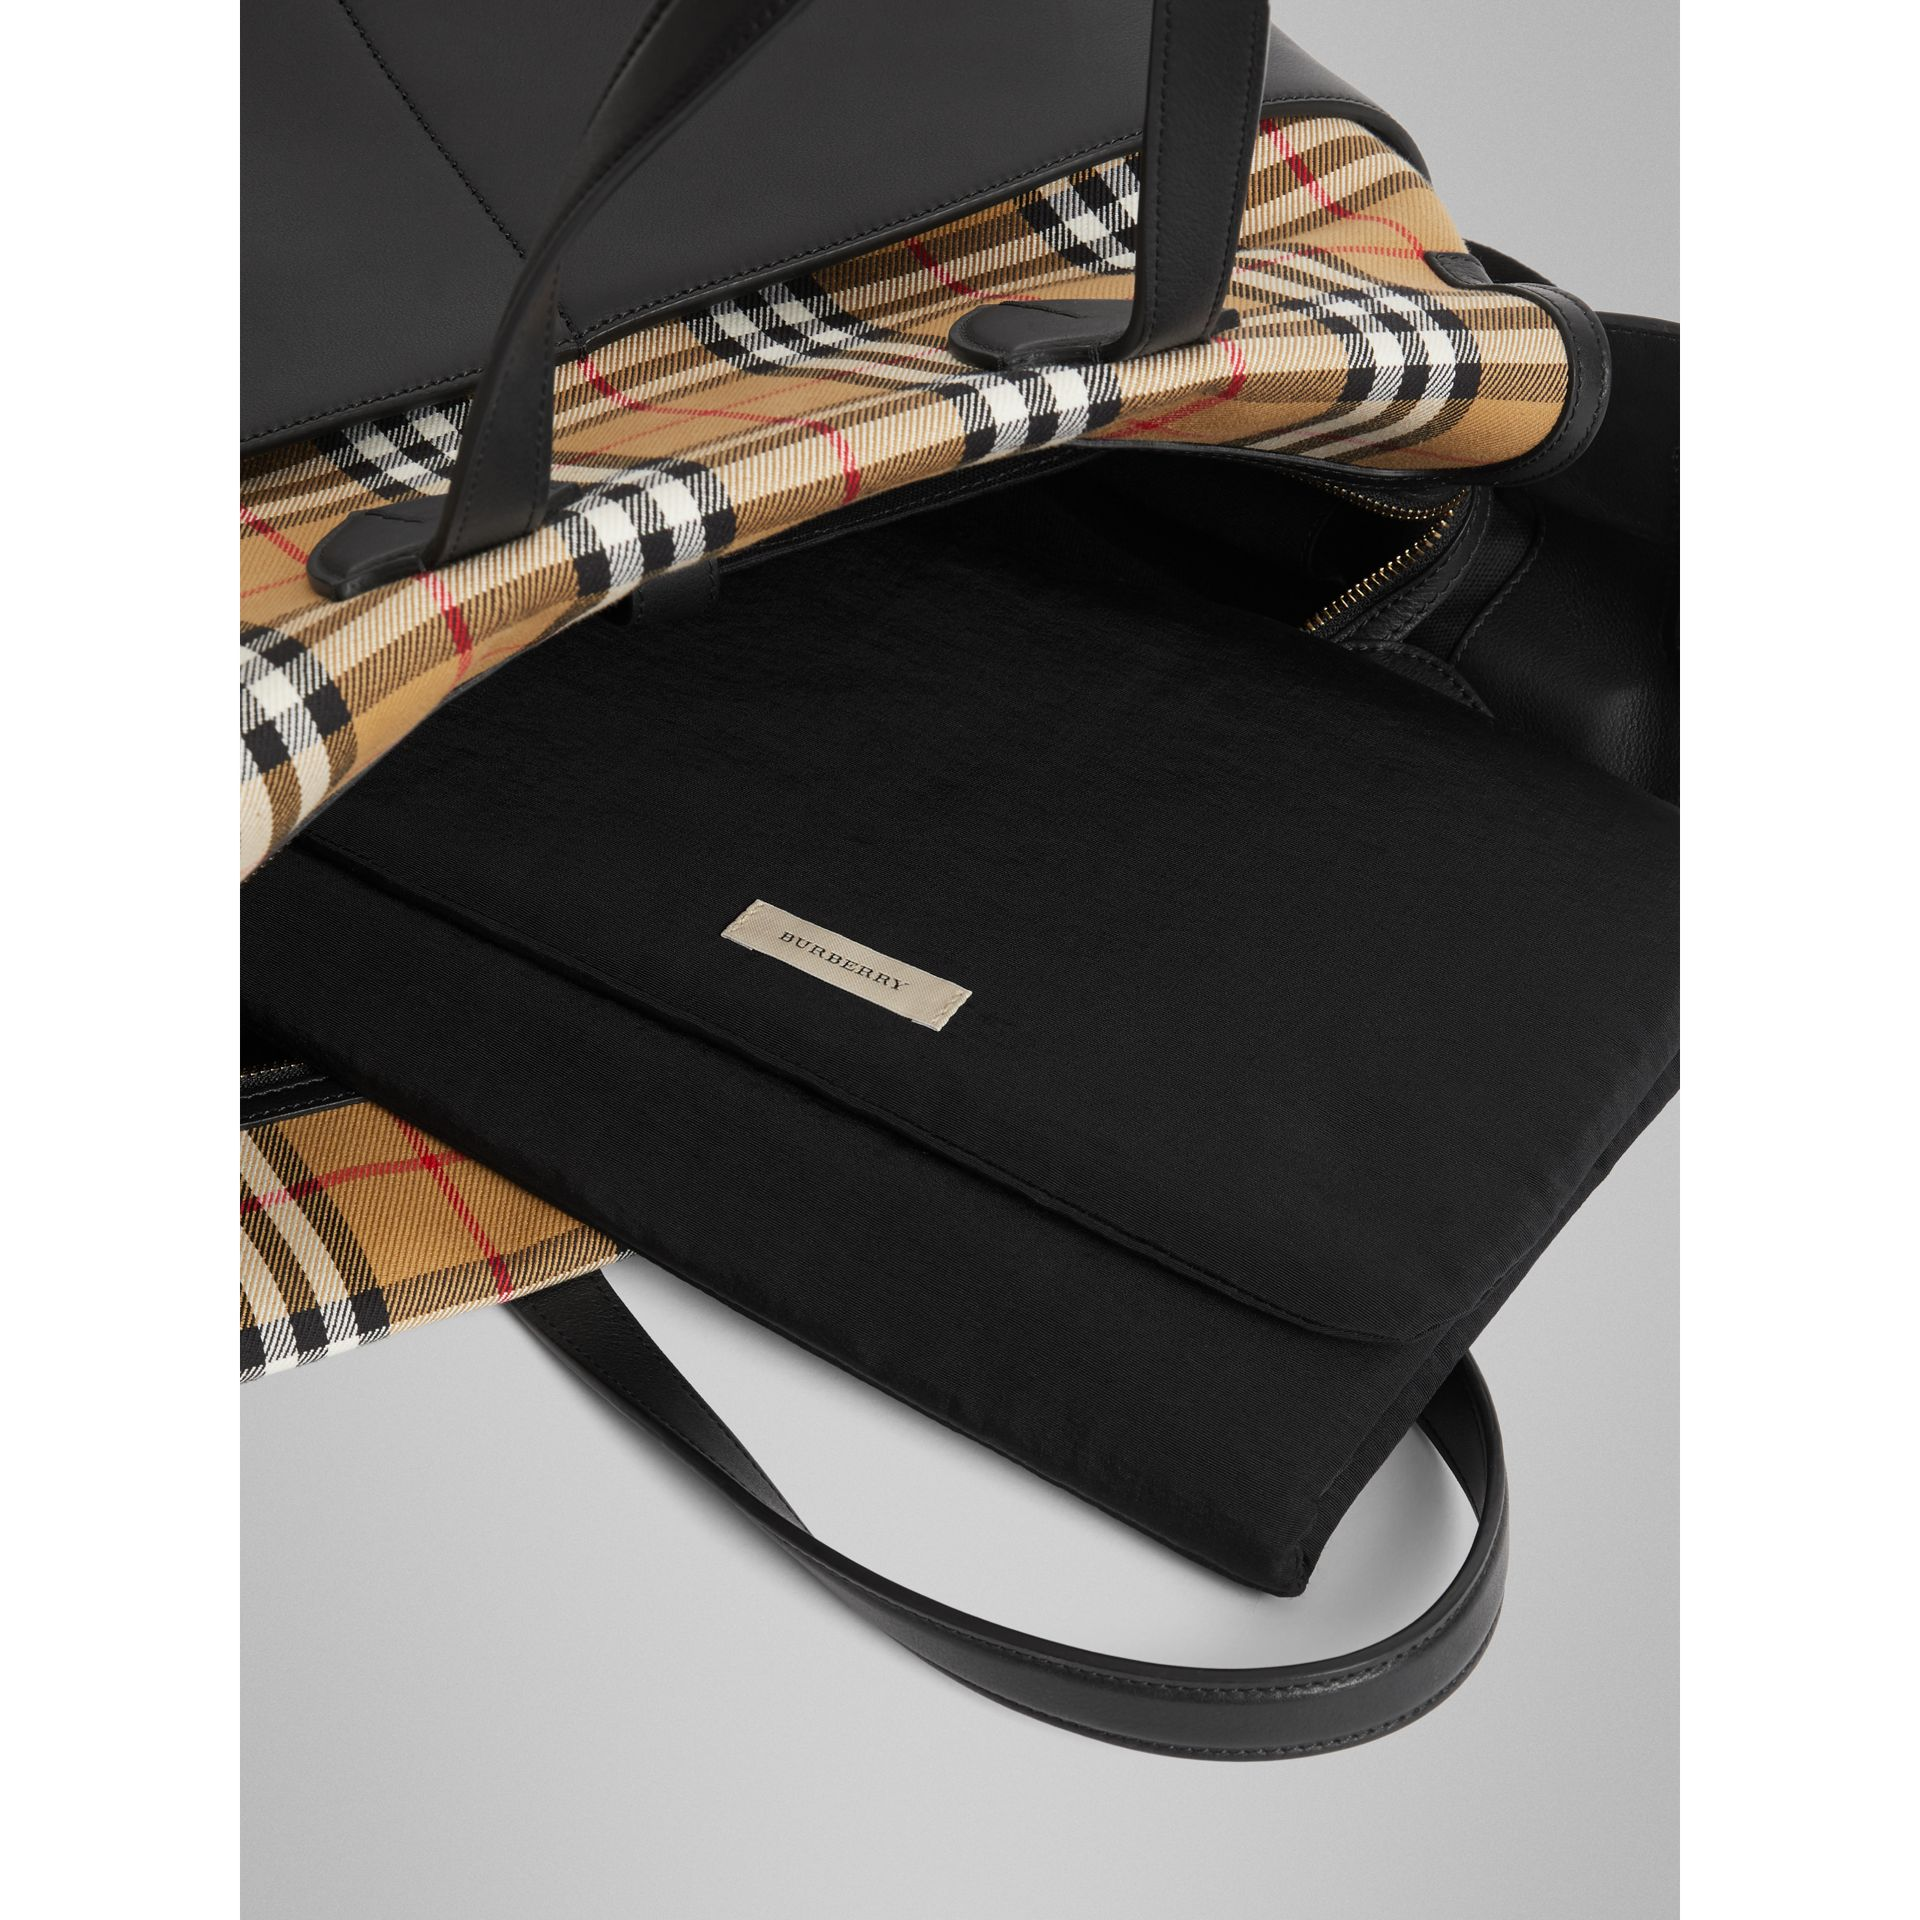 Vintage Check and Leather Baby Changing Tote in Black - Children | Burberry United States - gallery image 3